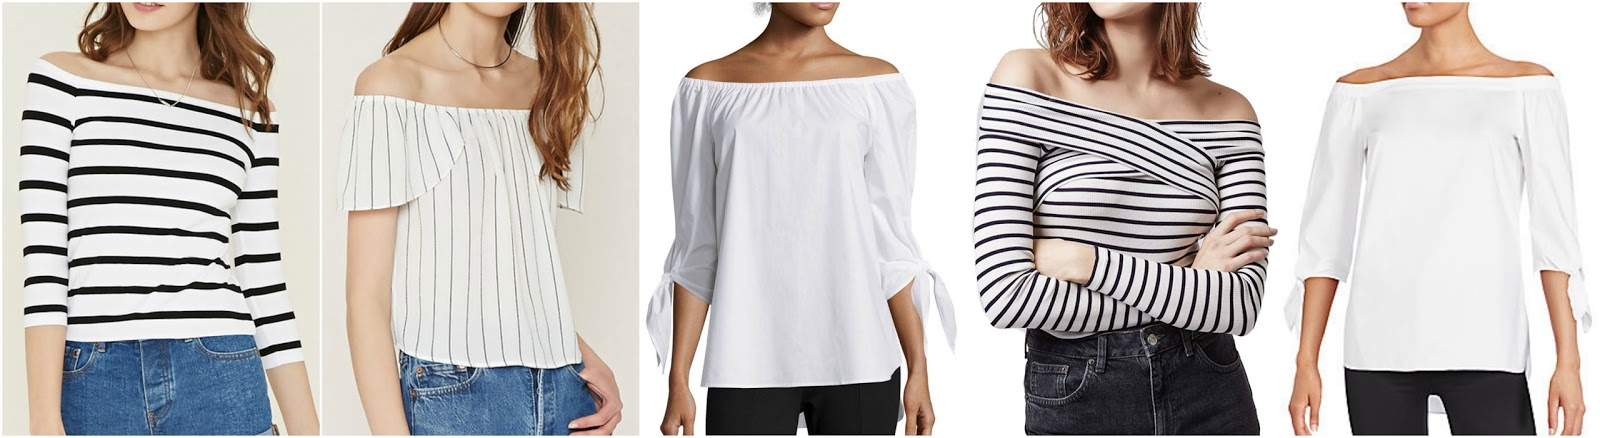 2129ced90a0583 Forever 21 Stripe Off-the-Shoulder Top  9 Forever 21 Contemporary Striped  Top  16